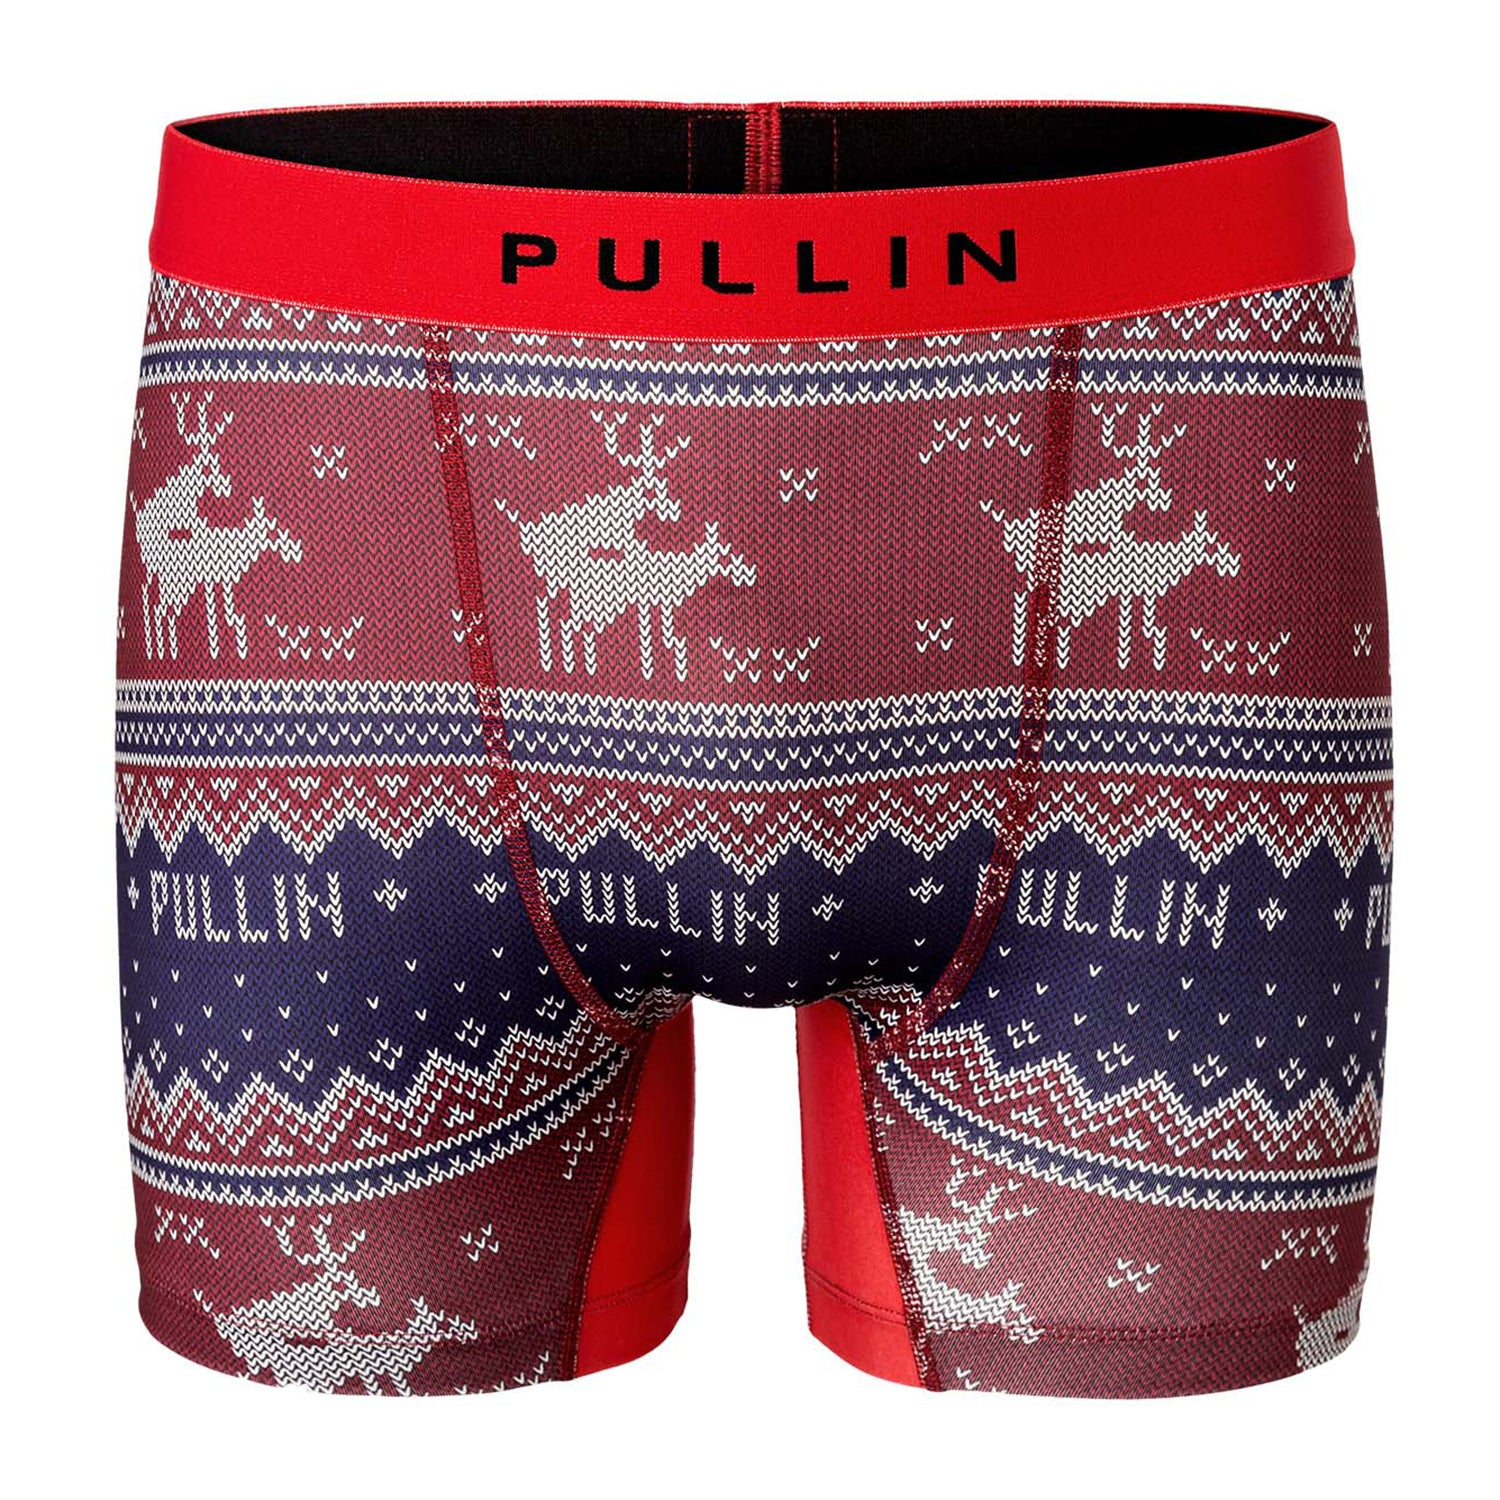 Pull-in Fashion 2 Boxer-Shorts - Jacquard